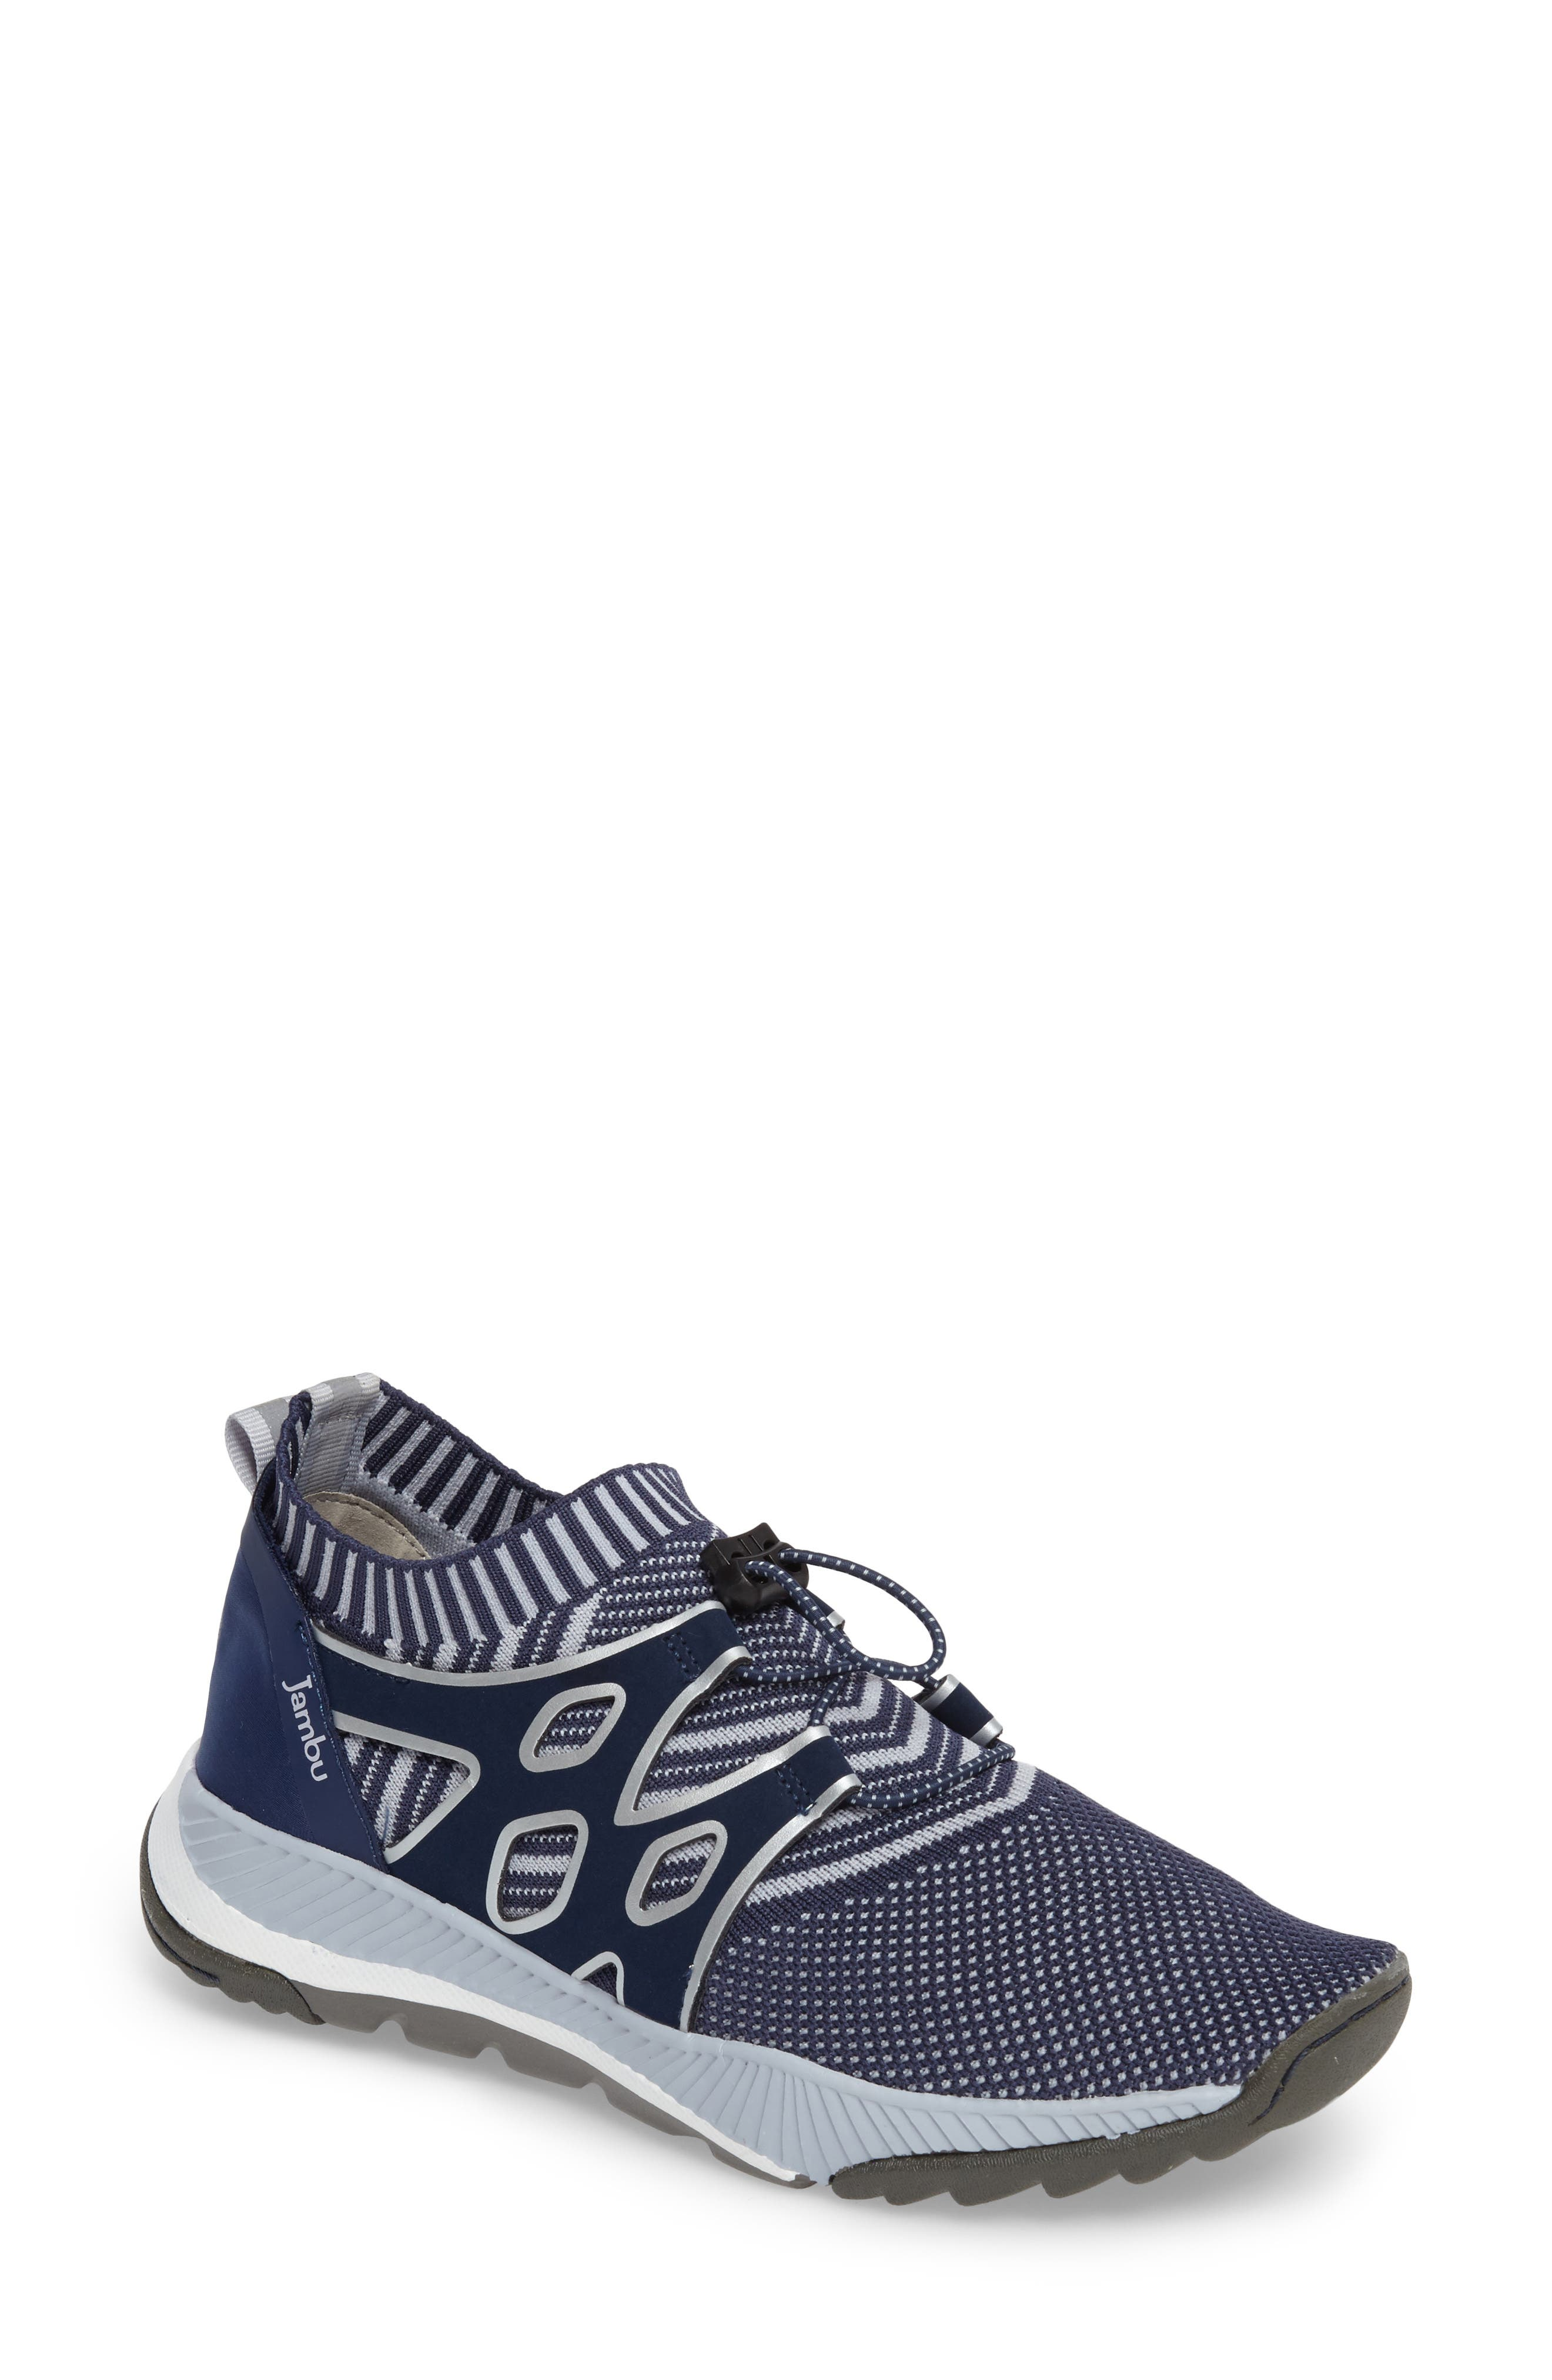 Jackie Sneaker,                         Main,                         color, Navy Fabric